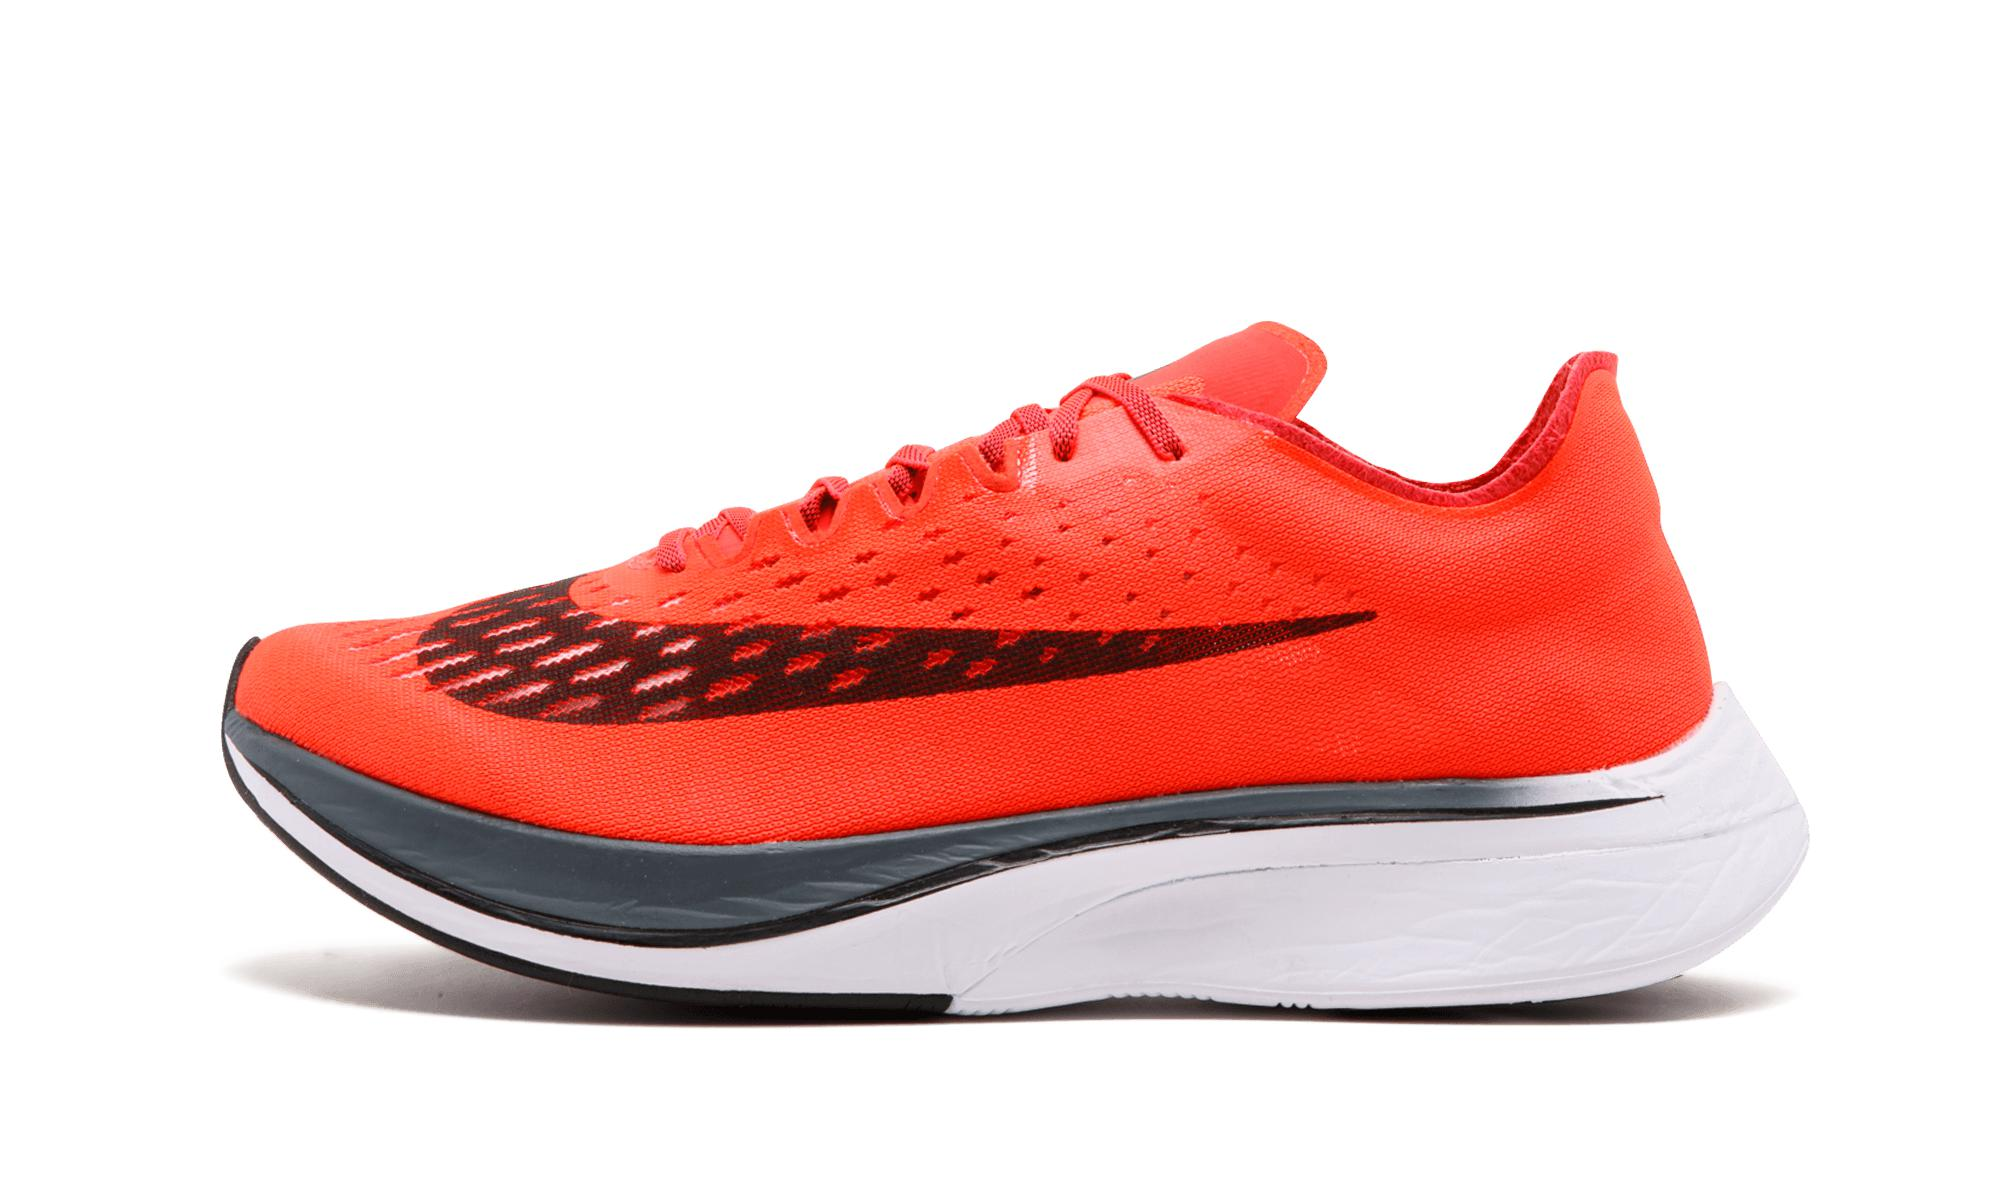 ea330fb5b3e2b Nike Zoom Vaporfly 4% in Red for Men - Save 5% - Lyst